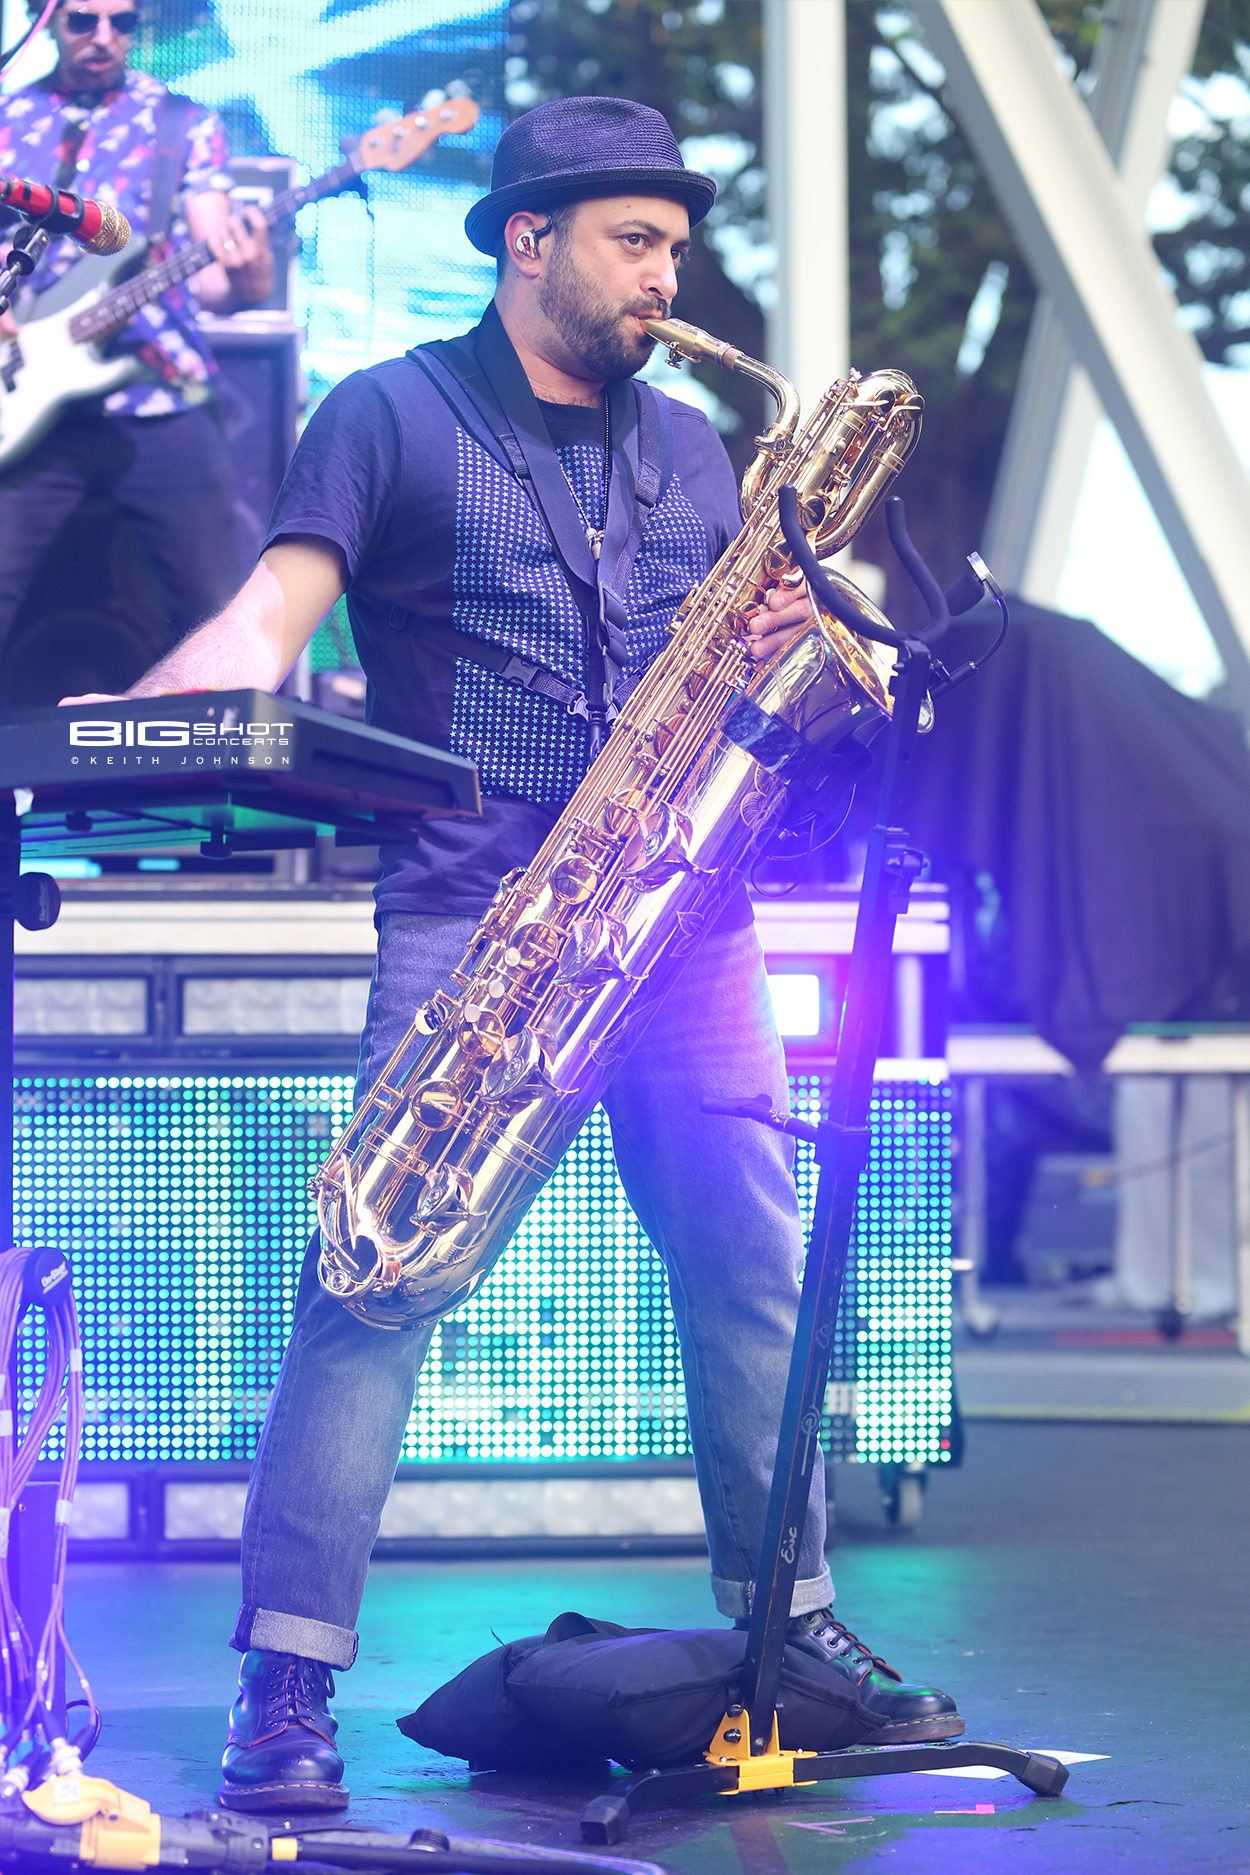 Fitz & the Tantrums Saxophone Player